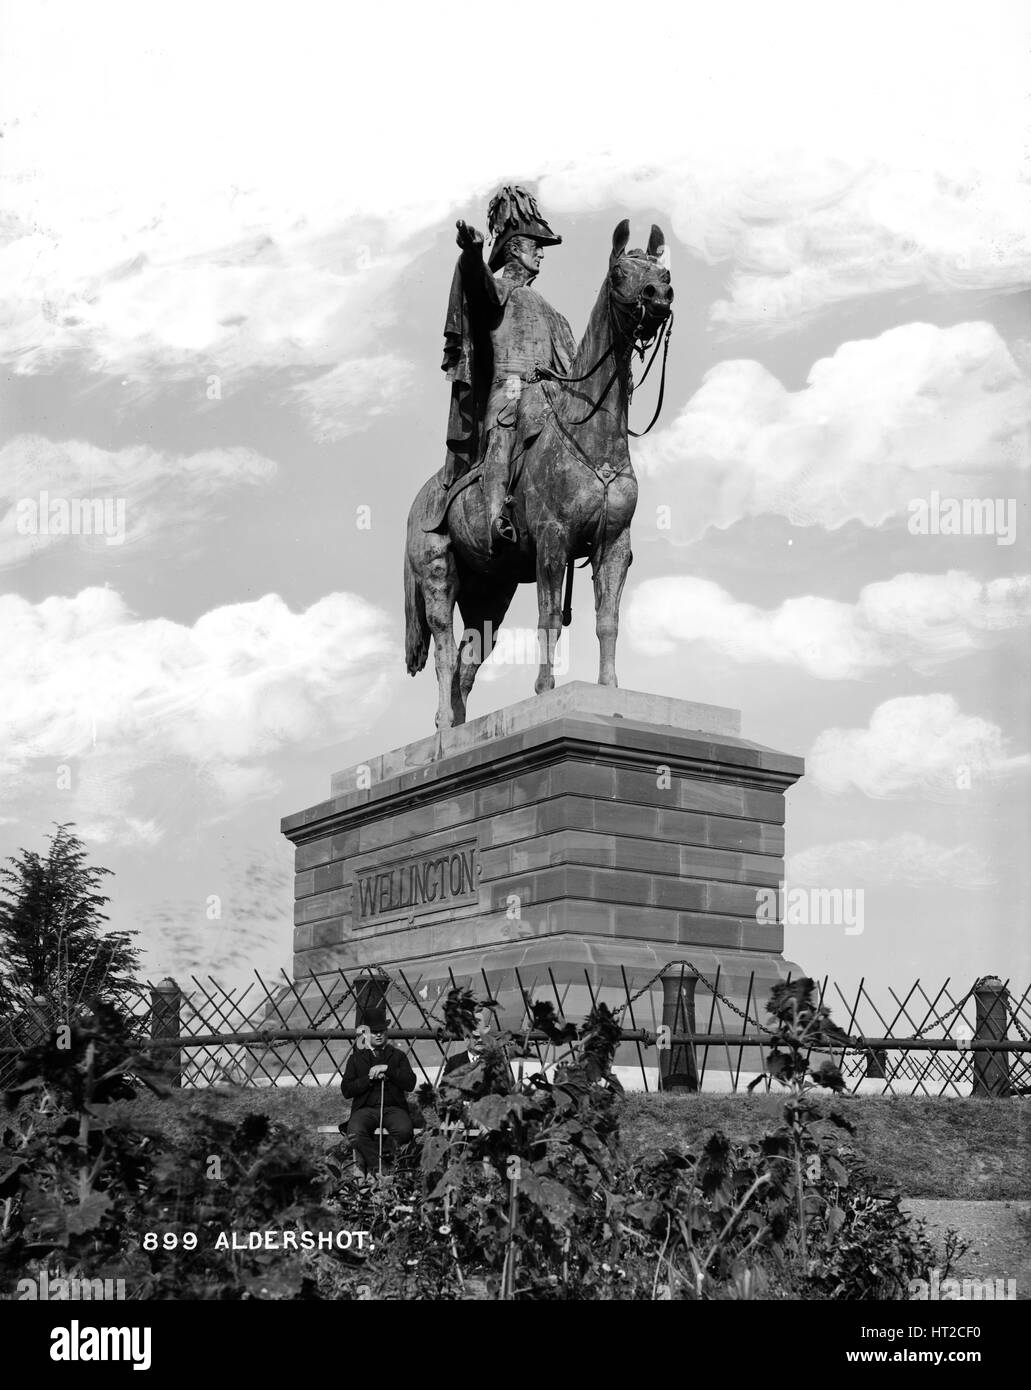 Statue of the Duke of Wellington, Round Hill, Aldershot, Hampshire, c1870-c1900. Artist: York & Son. - Stock Image